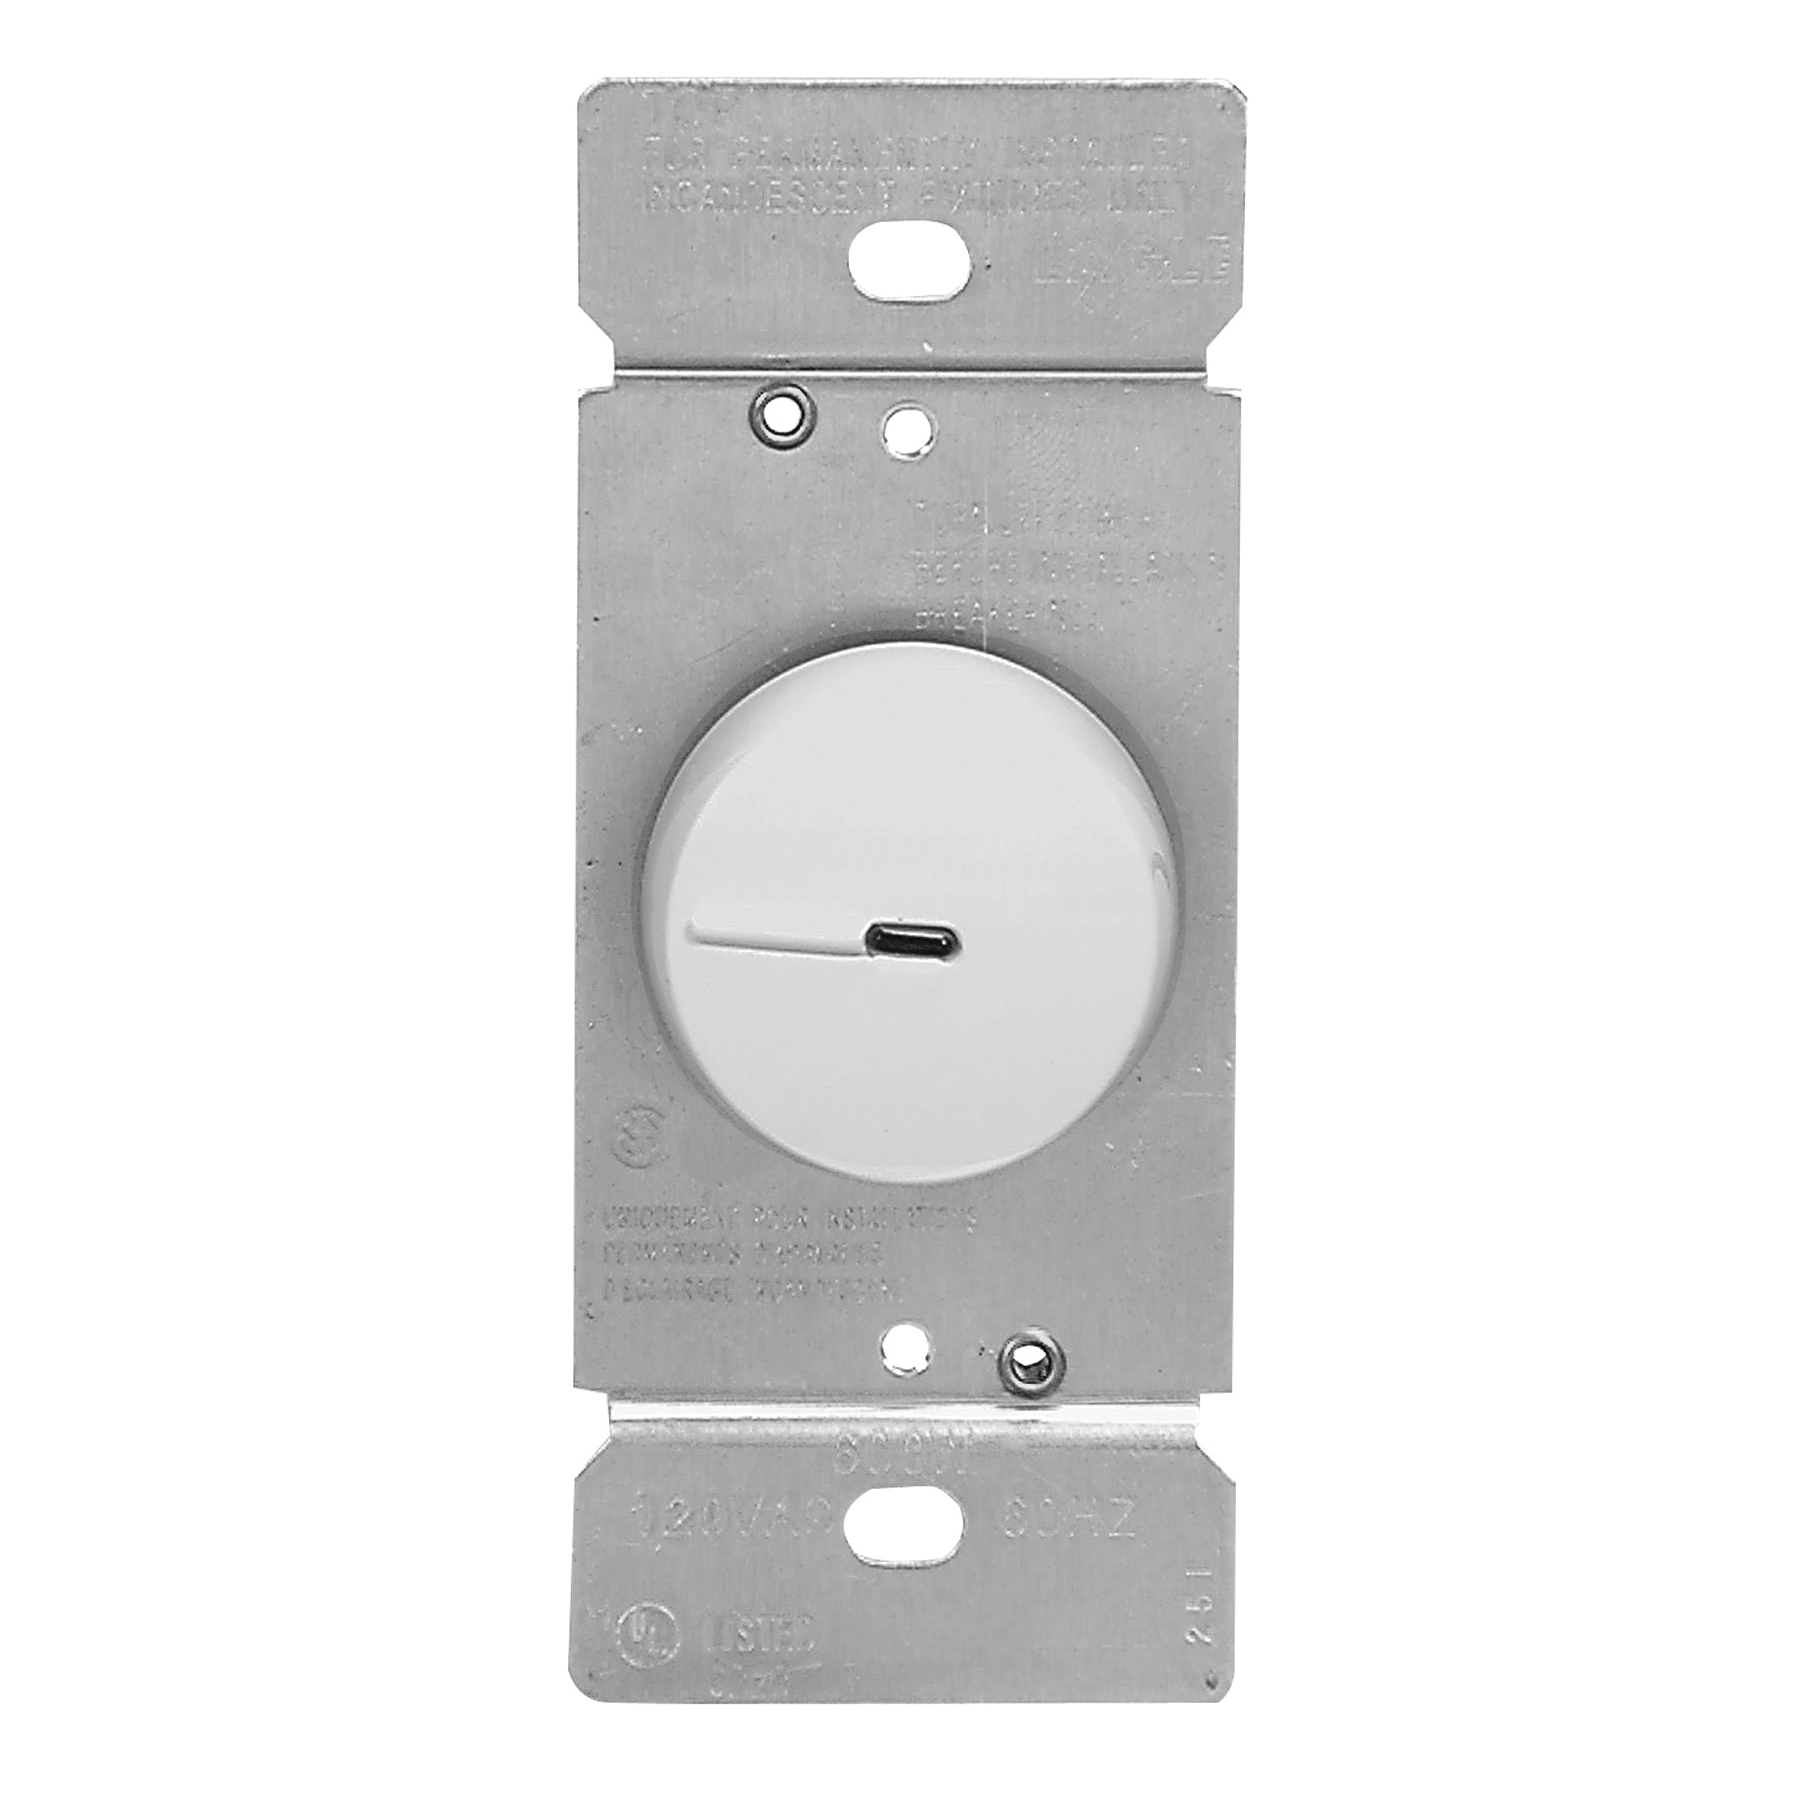 Picture of Eaton Wiring Devices RI306PL-W-K Rotary Dimmer, 120 V, 600 W, Incandescent Lamp, 3-Way, White